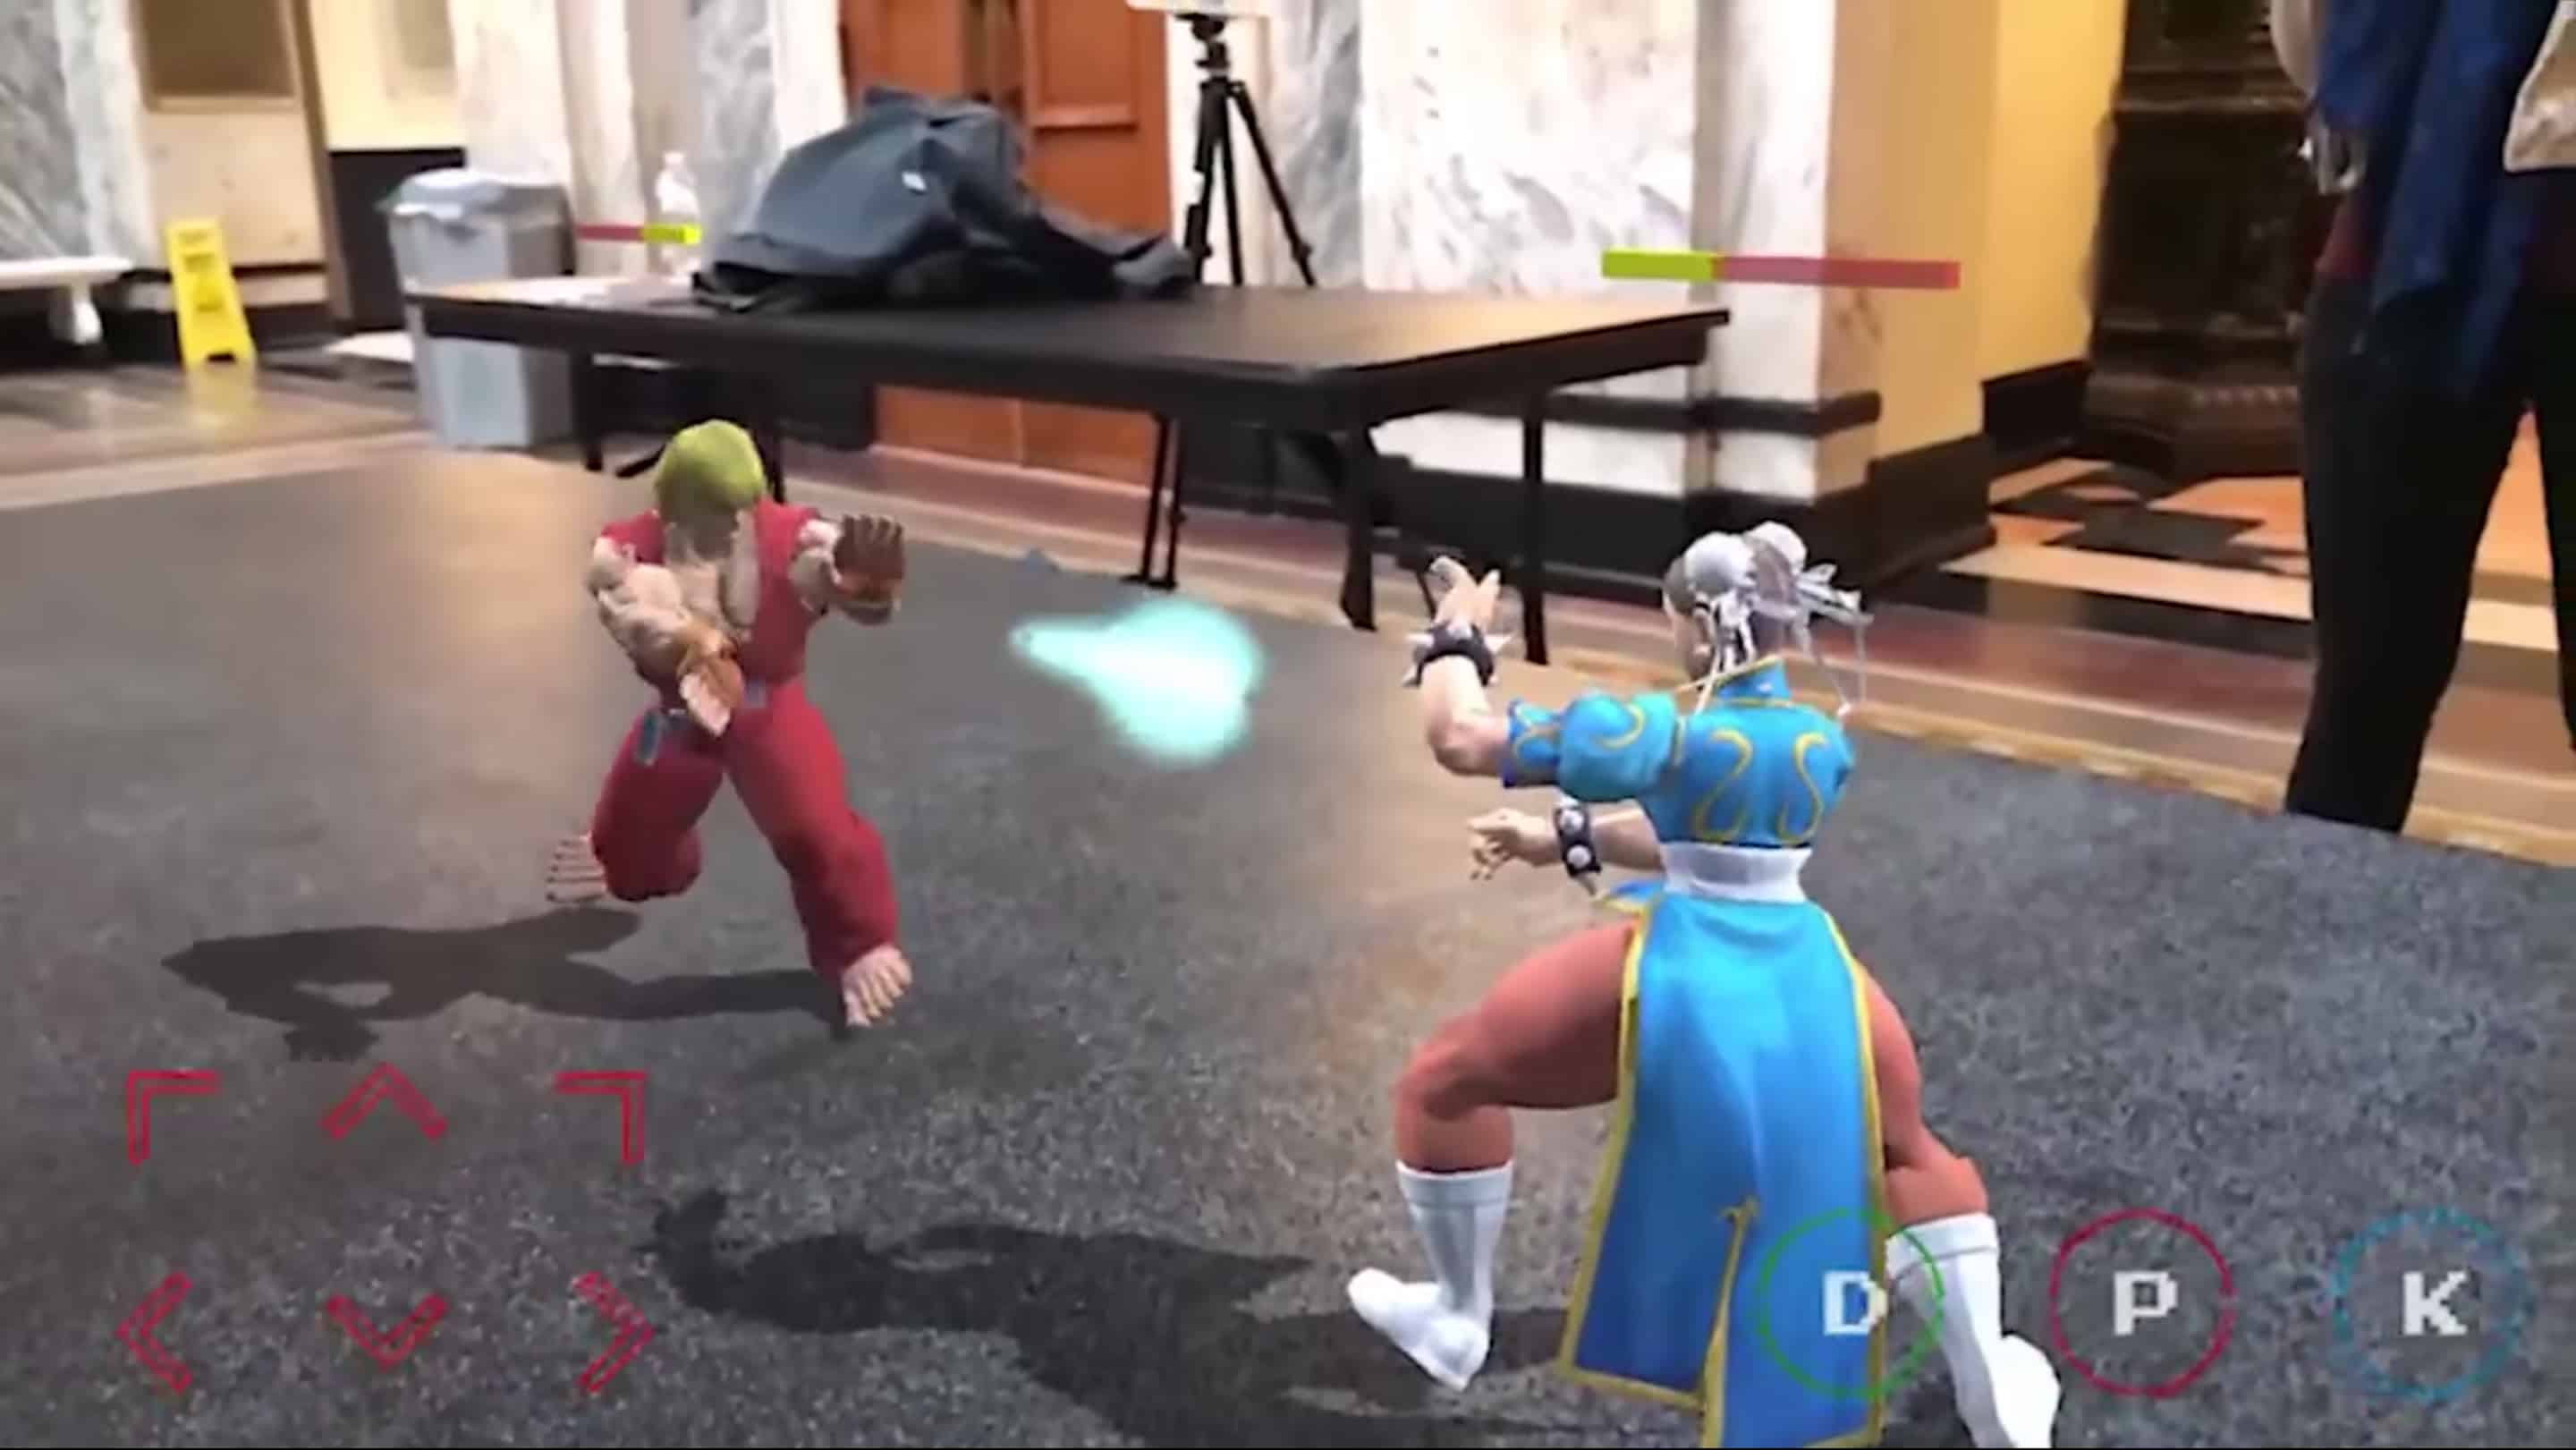 Street Fighter II in AR shows that old games can learn new tricks.